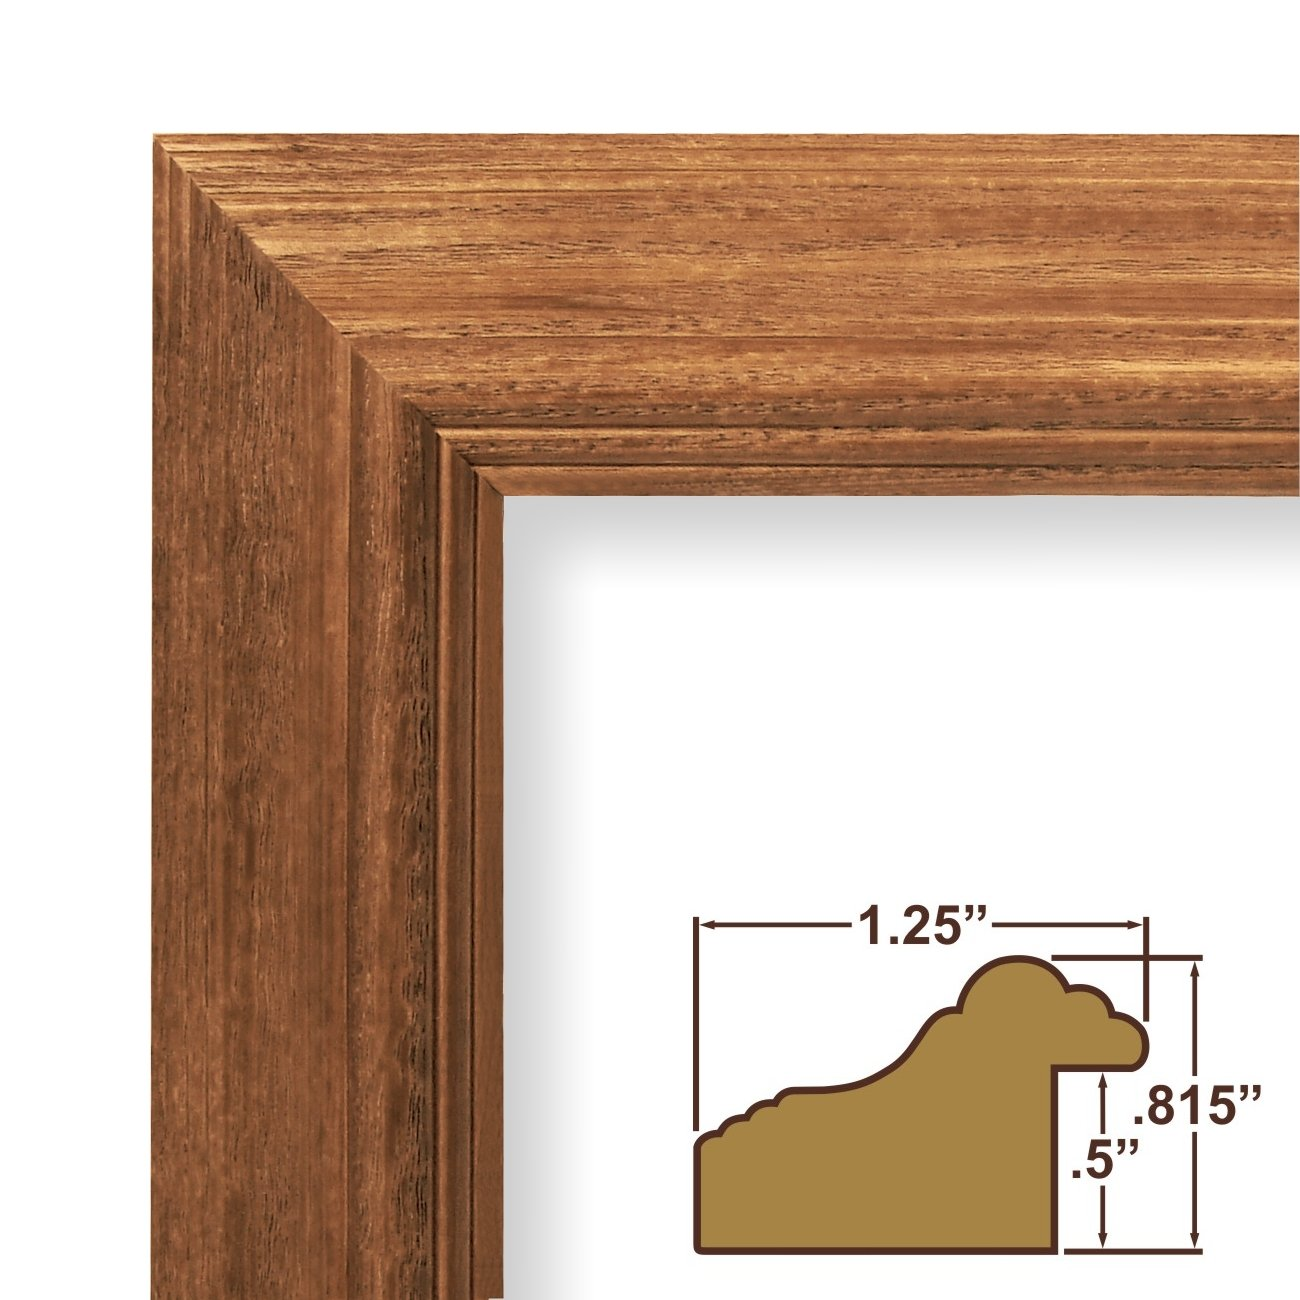 Amazon.com - 24x30 Poster Frame, Wood Grain Finish, 1.25\